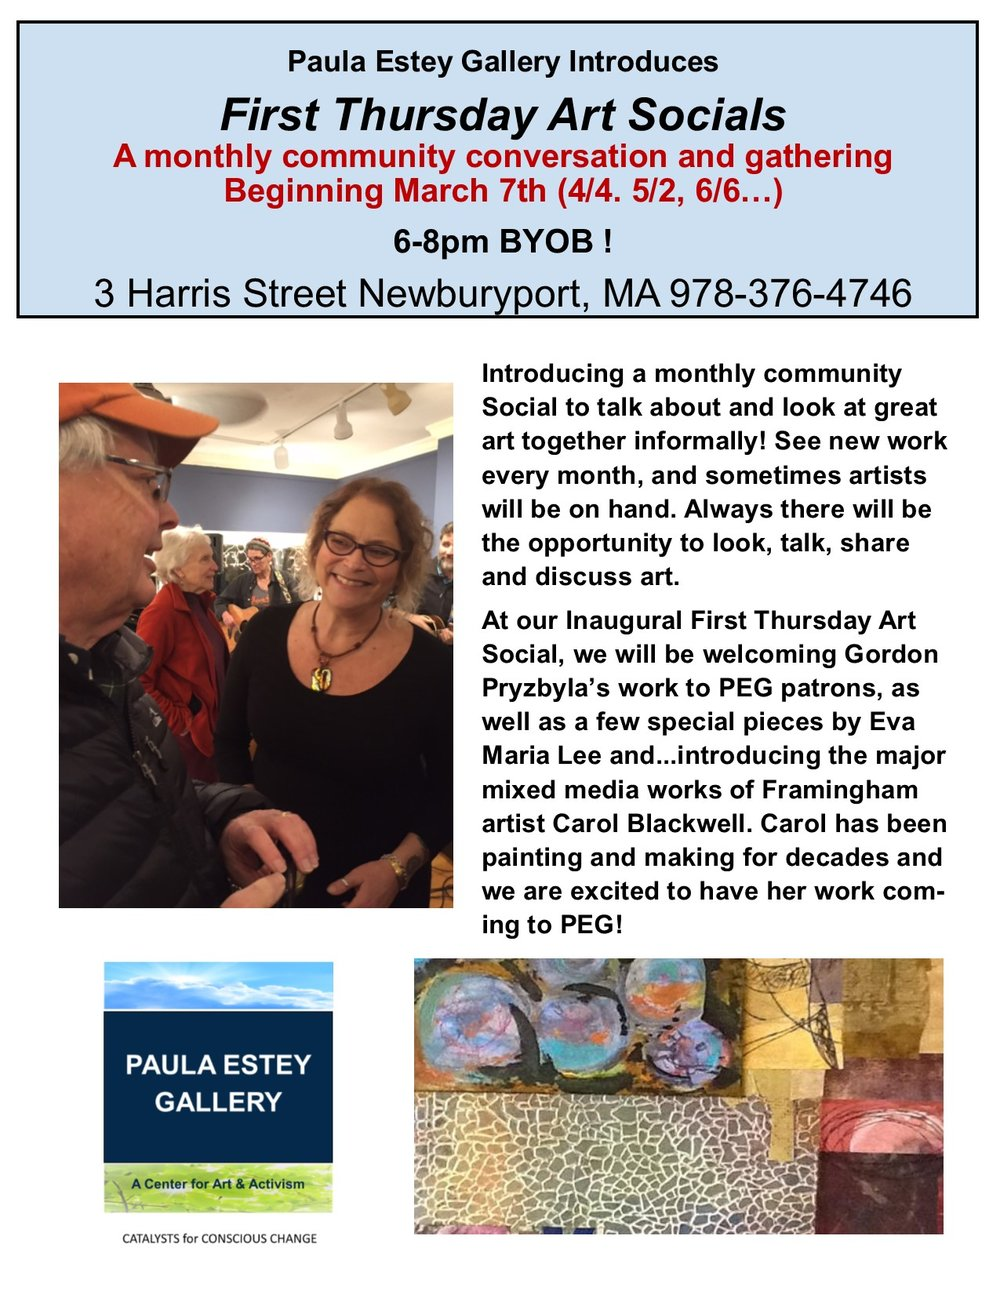 First Thursday Art Socials Feb   2019.jpg